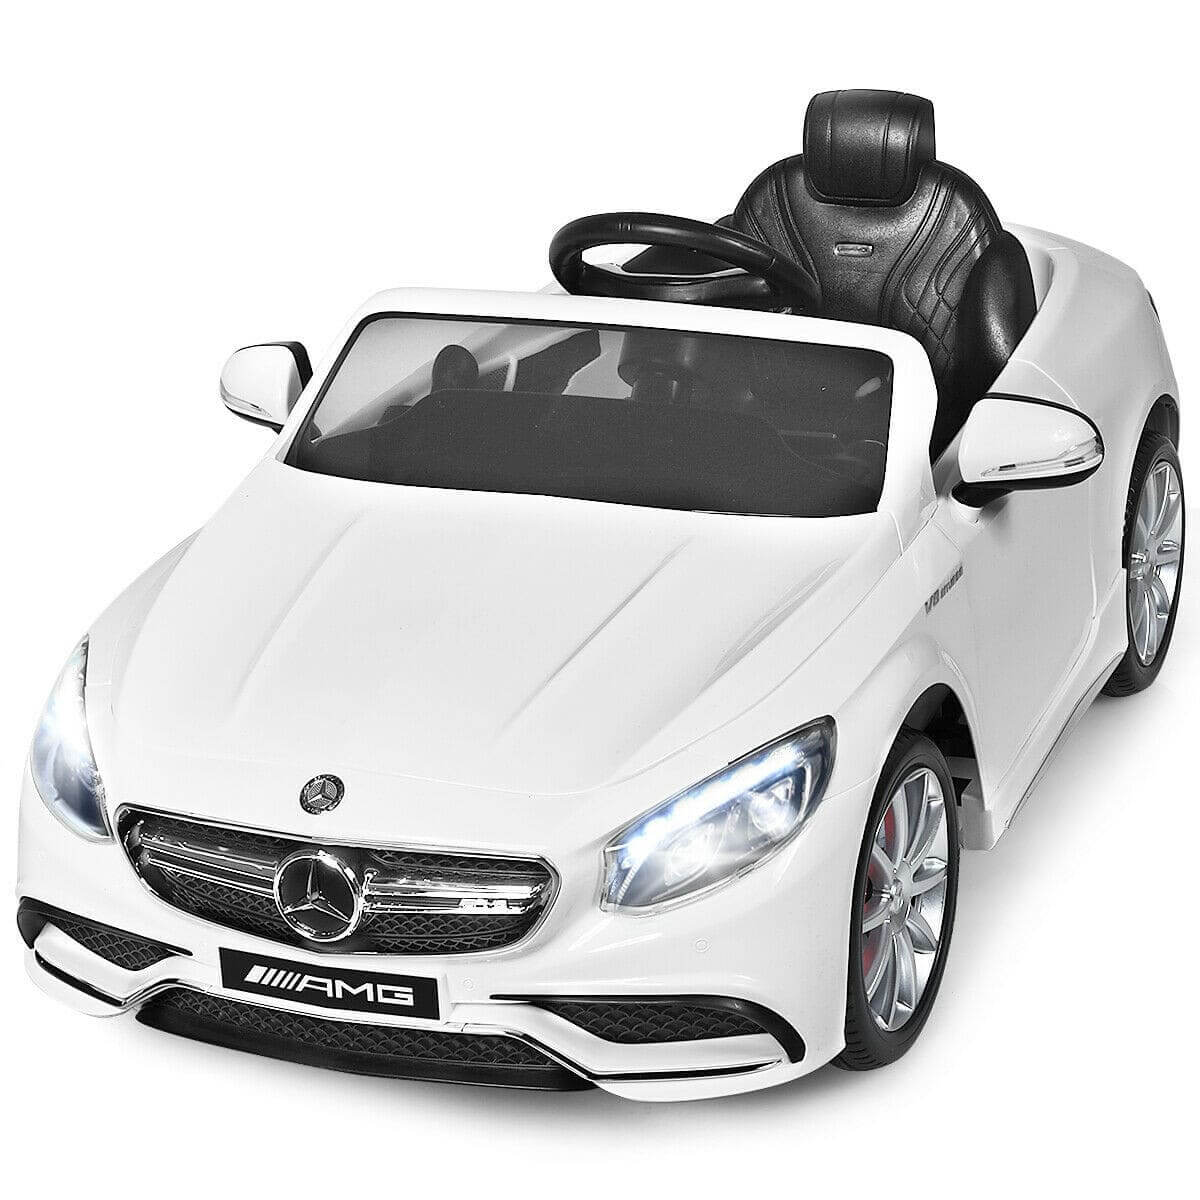 MERCEDES BENZ AMG S63 Licensed 12V KIDS ELECTRIC 1-SEATER RIDE-ON CAR - FREE SHIPPING